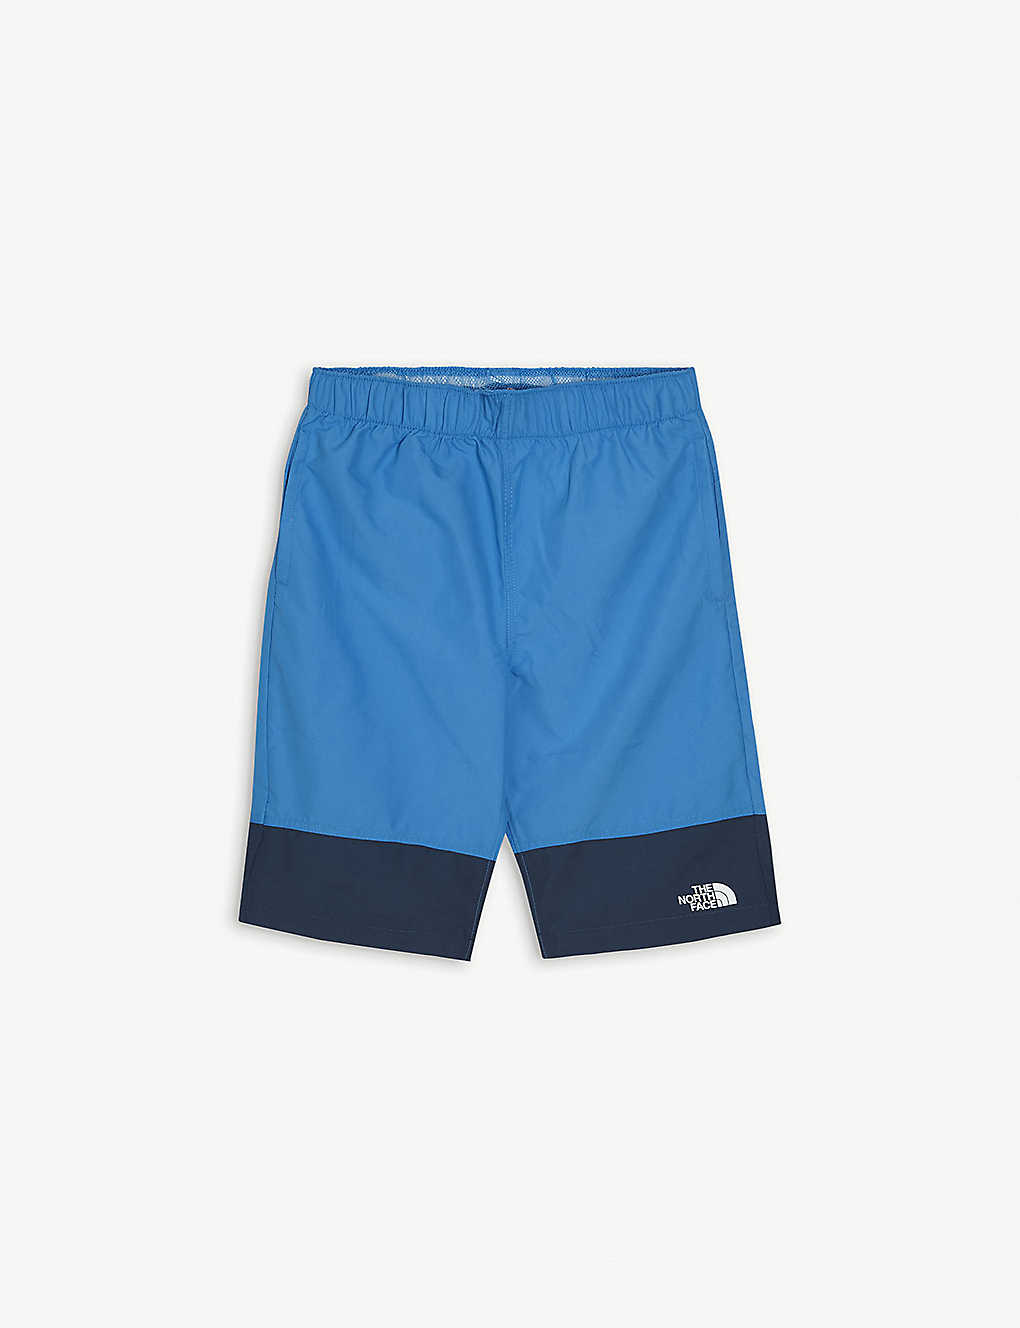 THE NORTH FACE: Reactive shell swim shorts 6-20 years